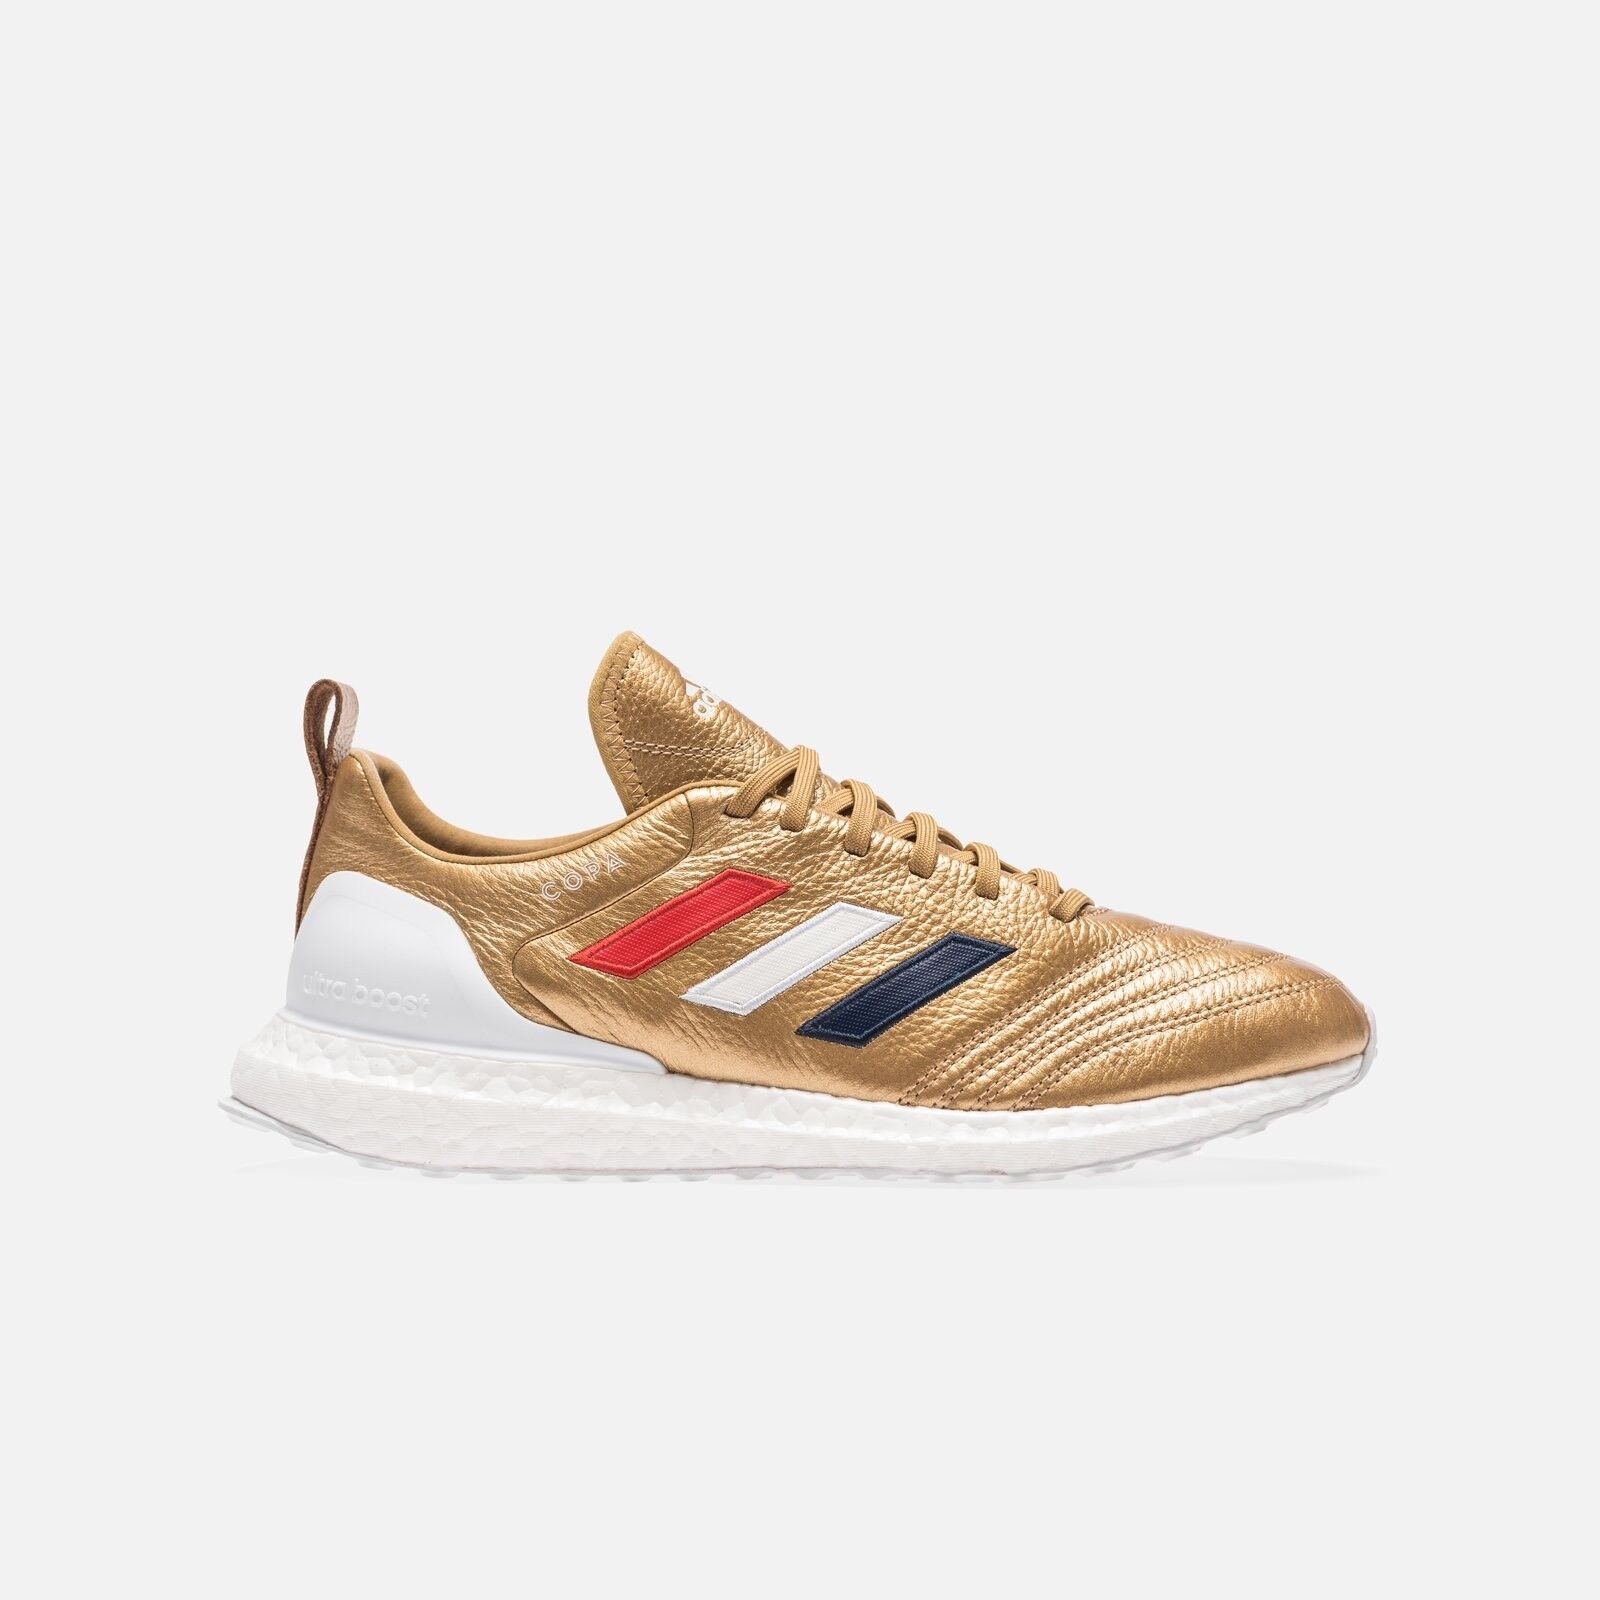 Kith x Adidas COPA Mundial 18 Size Gold 7.5 Men's Ultra Boost Gold Size Size 8.5 Women's bef97d